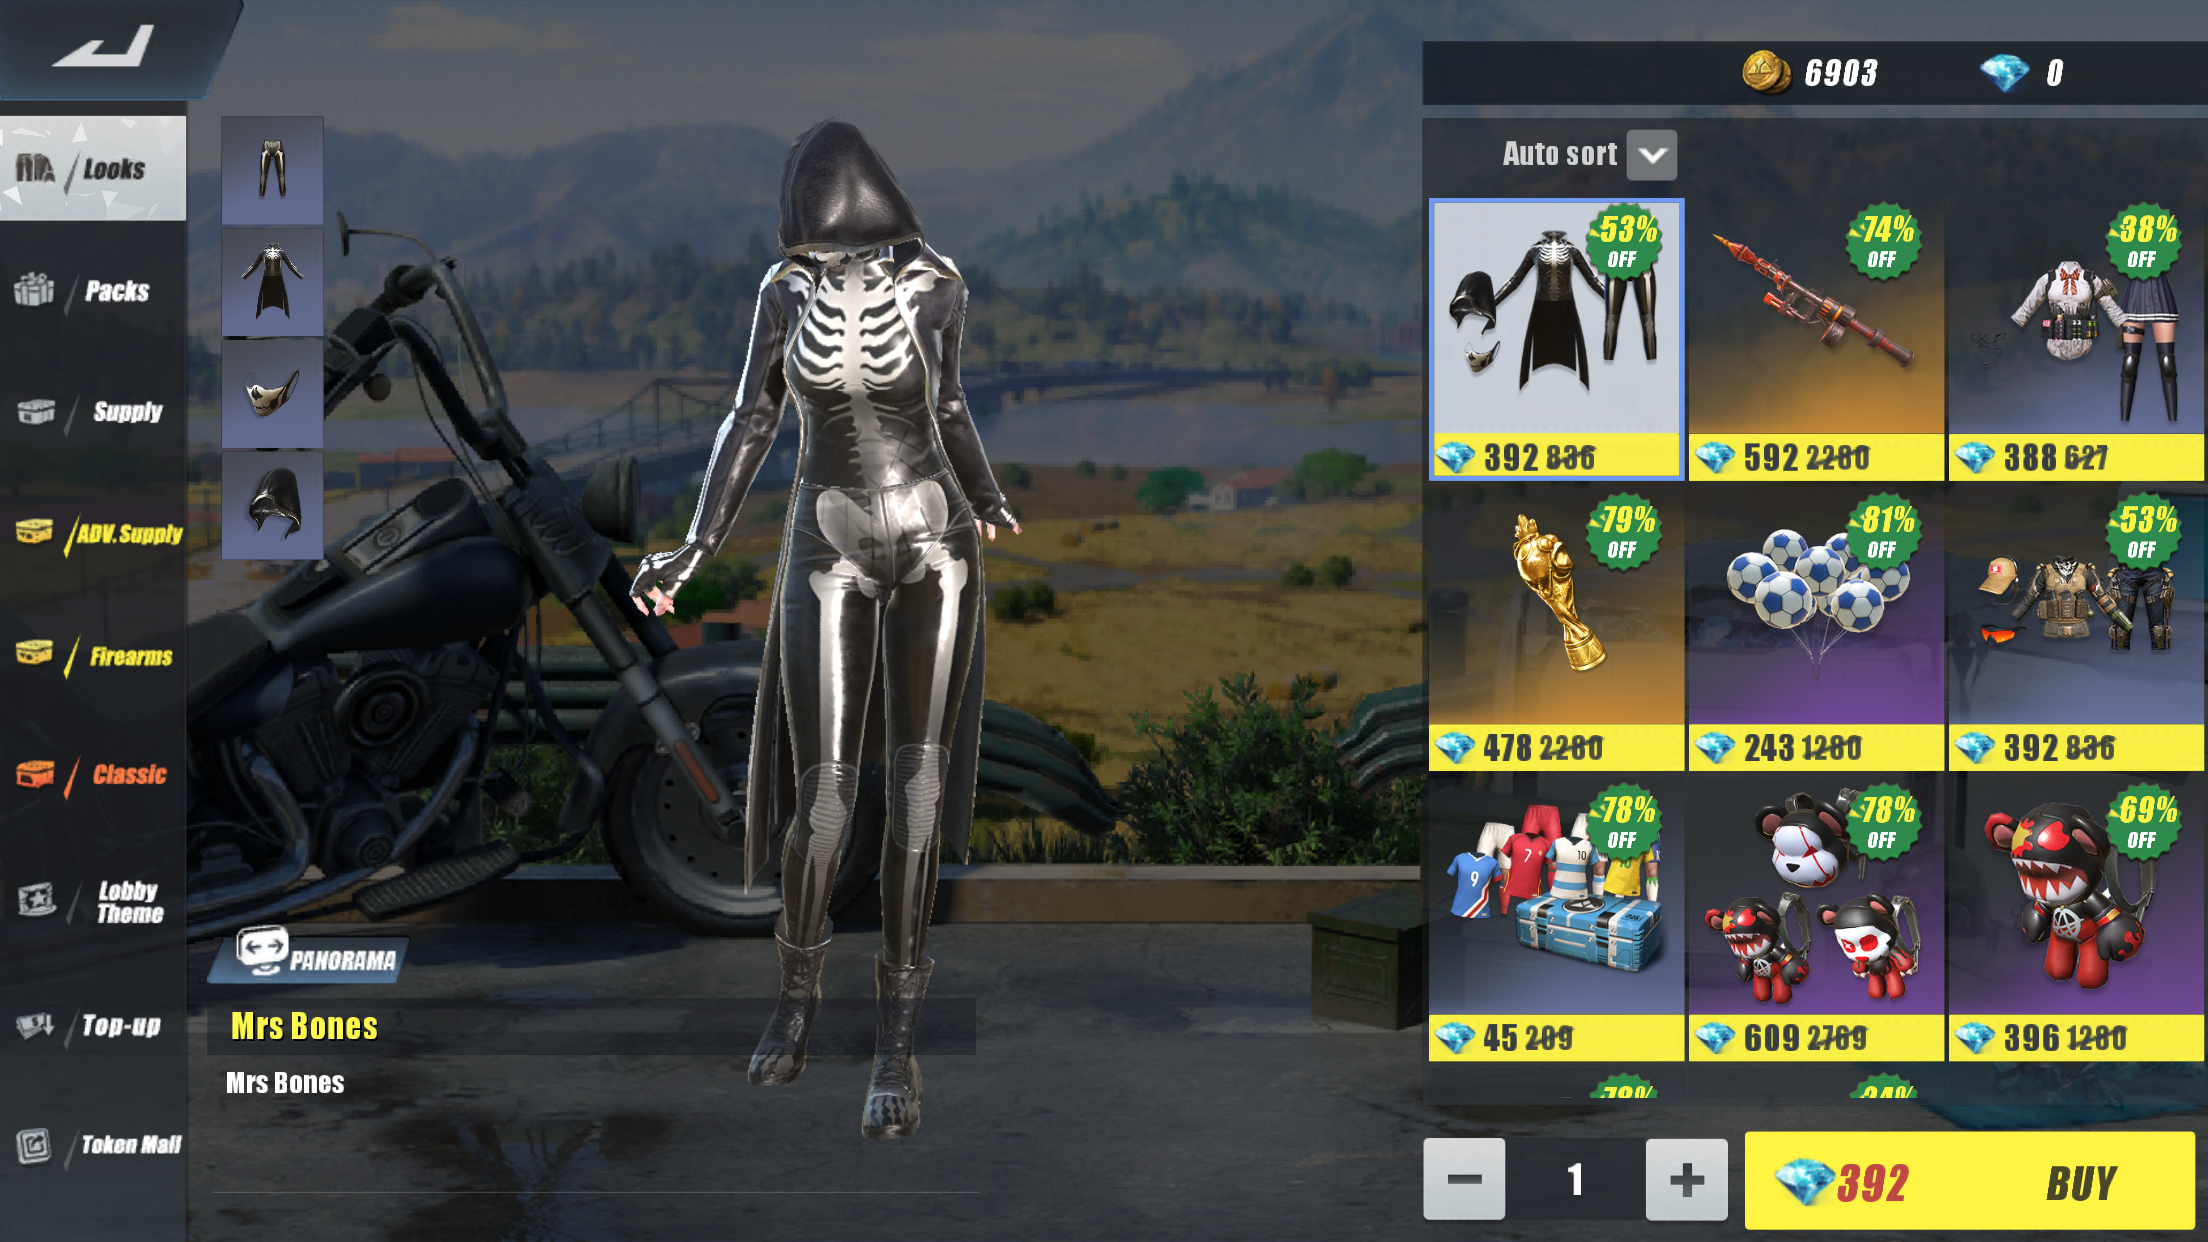 How to top up Diamonds on Rules of Survival for Android